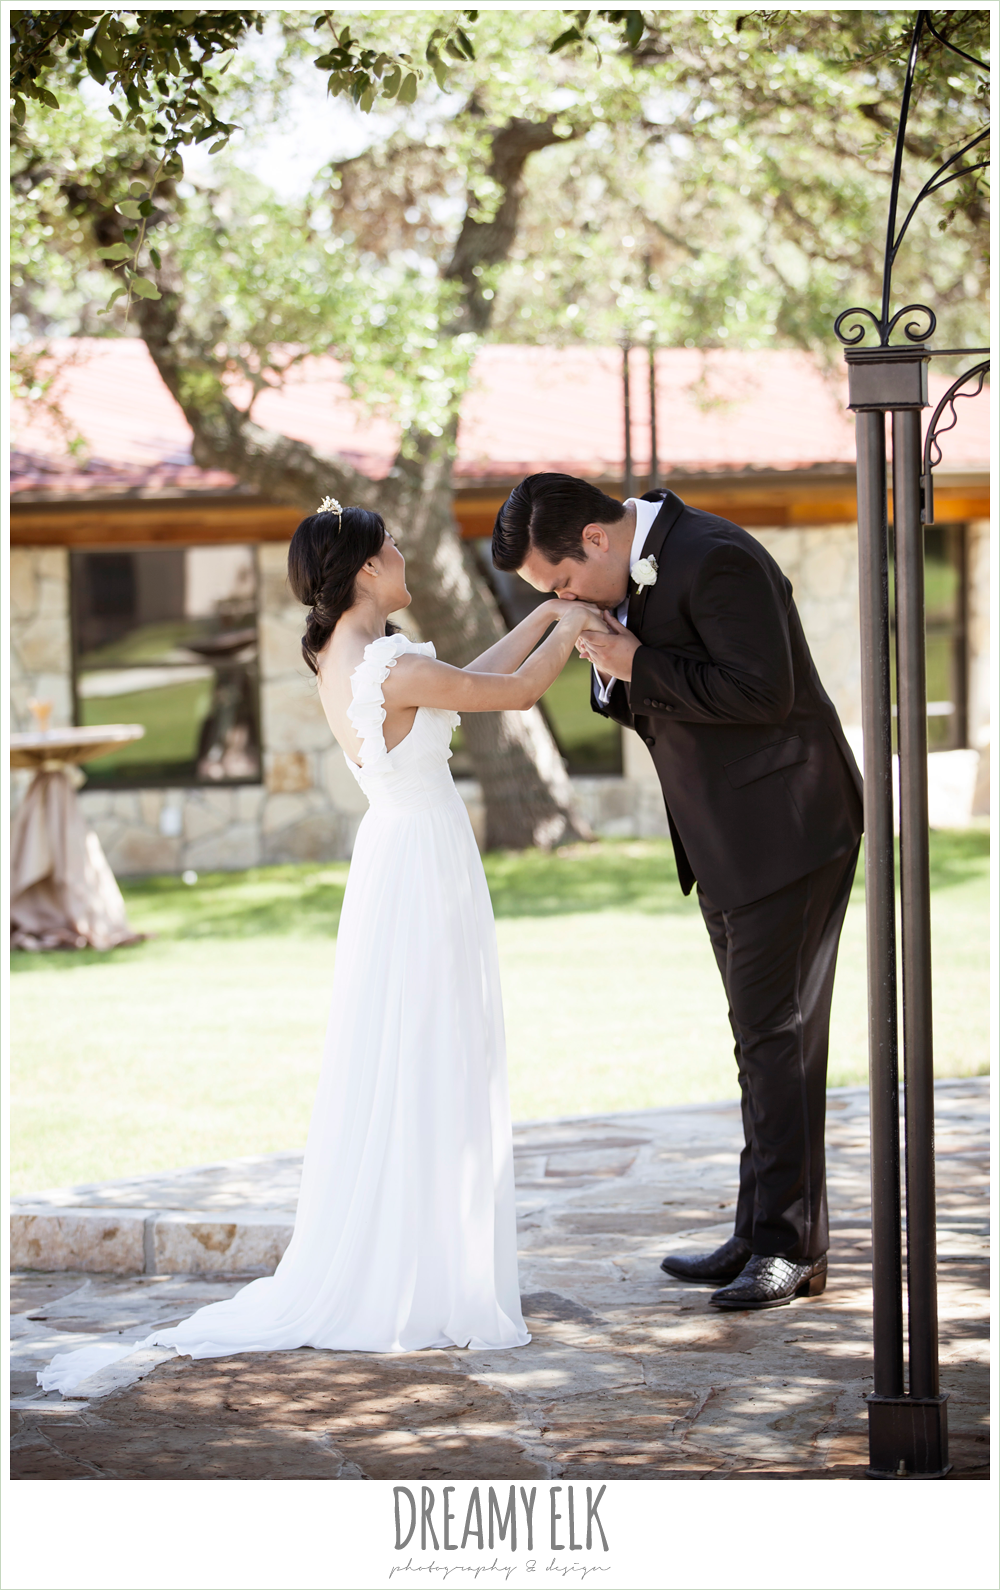 bride and groom seeing each other before the wedding, first look, groom kissing bride on the hand, chiffon wedding dress with ruffle sleeve, la hacienda, dripping springs, texas {dreamy elk photography and design} photo